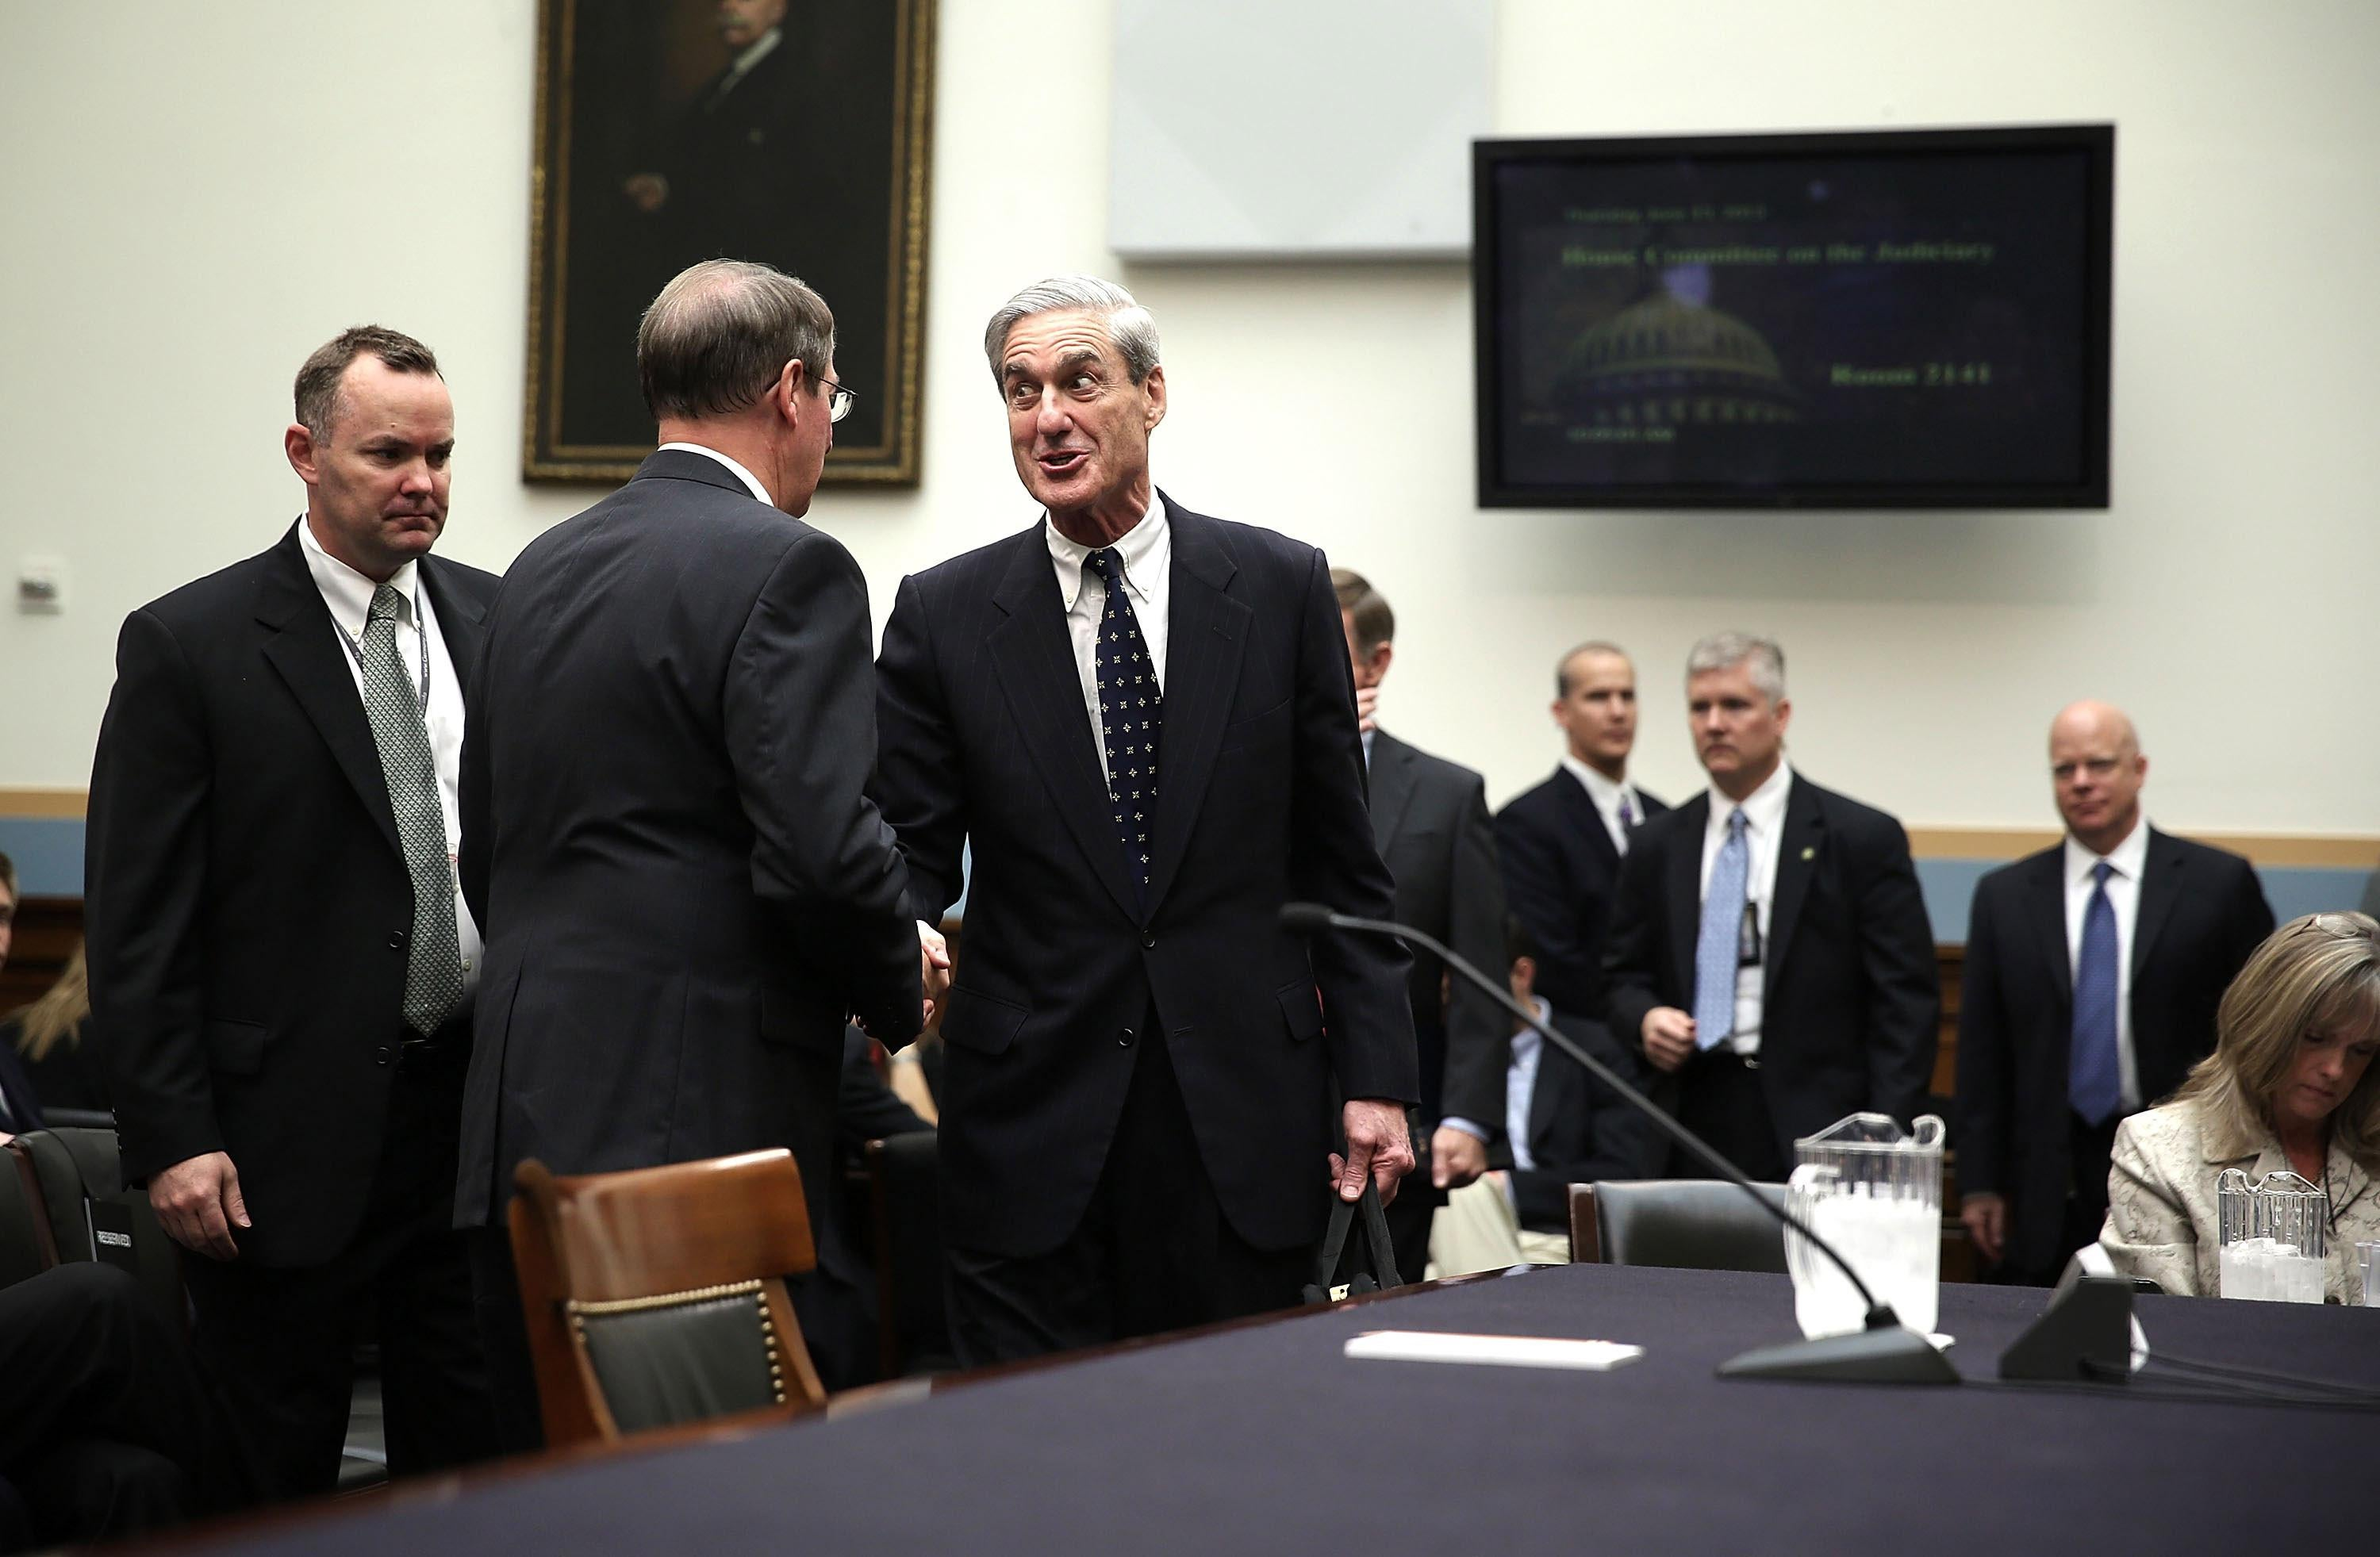 Robert Mueller shakes hands with committee chairman Rep. Bob Goodlatte as he arrives at a hearing before the House Judiciary Committee June 13, 2013 on Capitol Hill in Washington, DC.